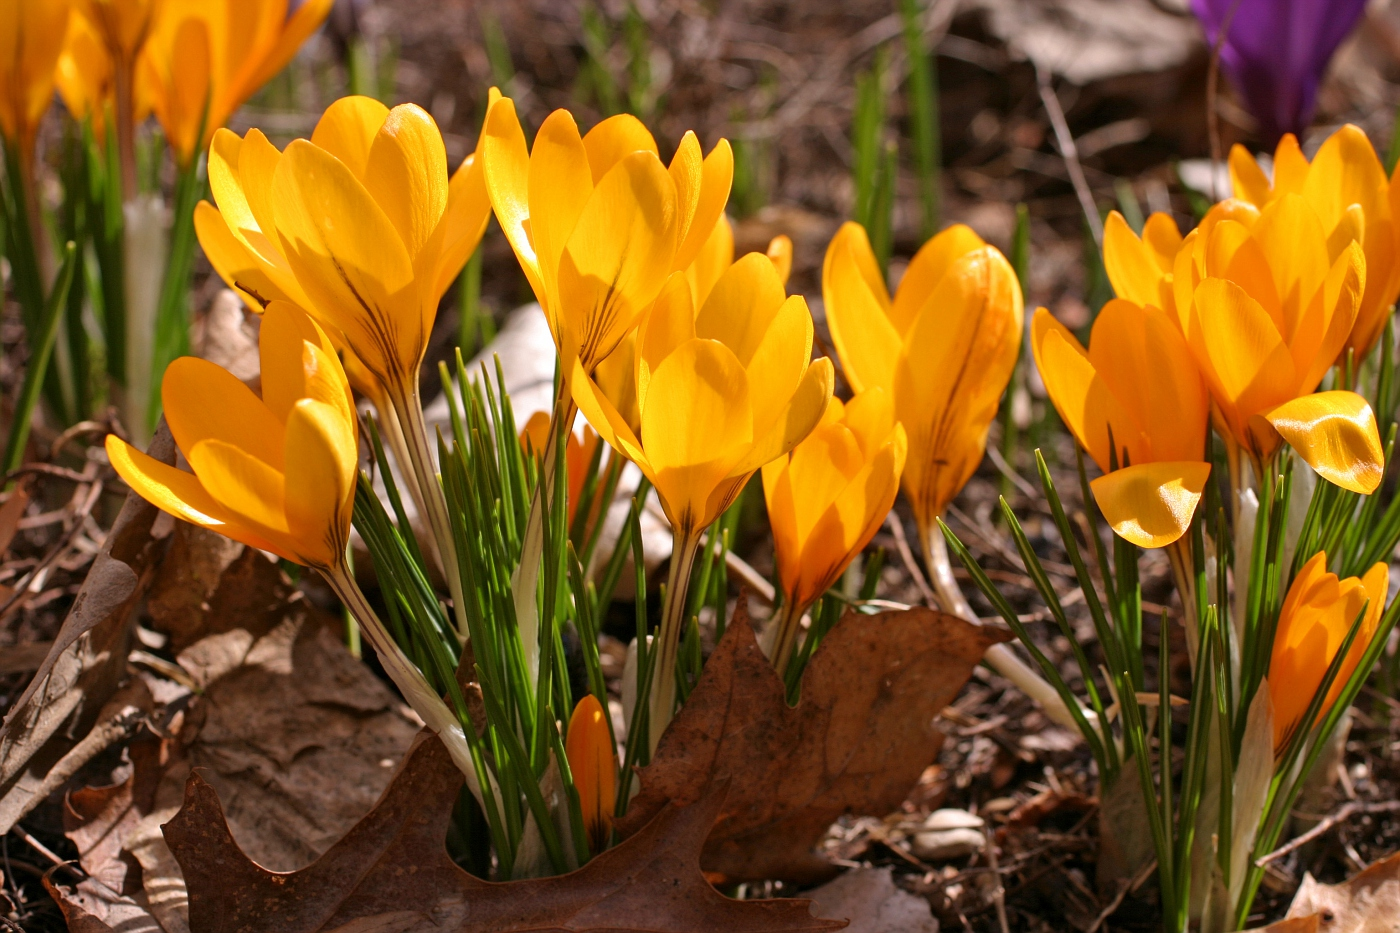 Assortment of Giant gold crocus